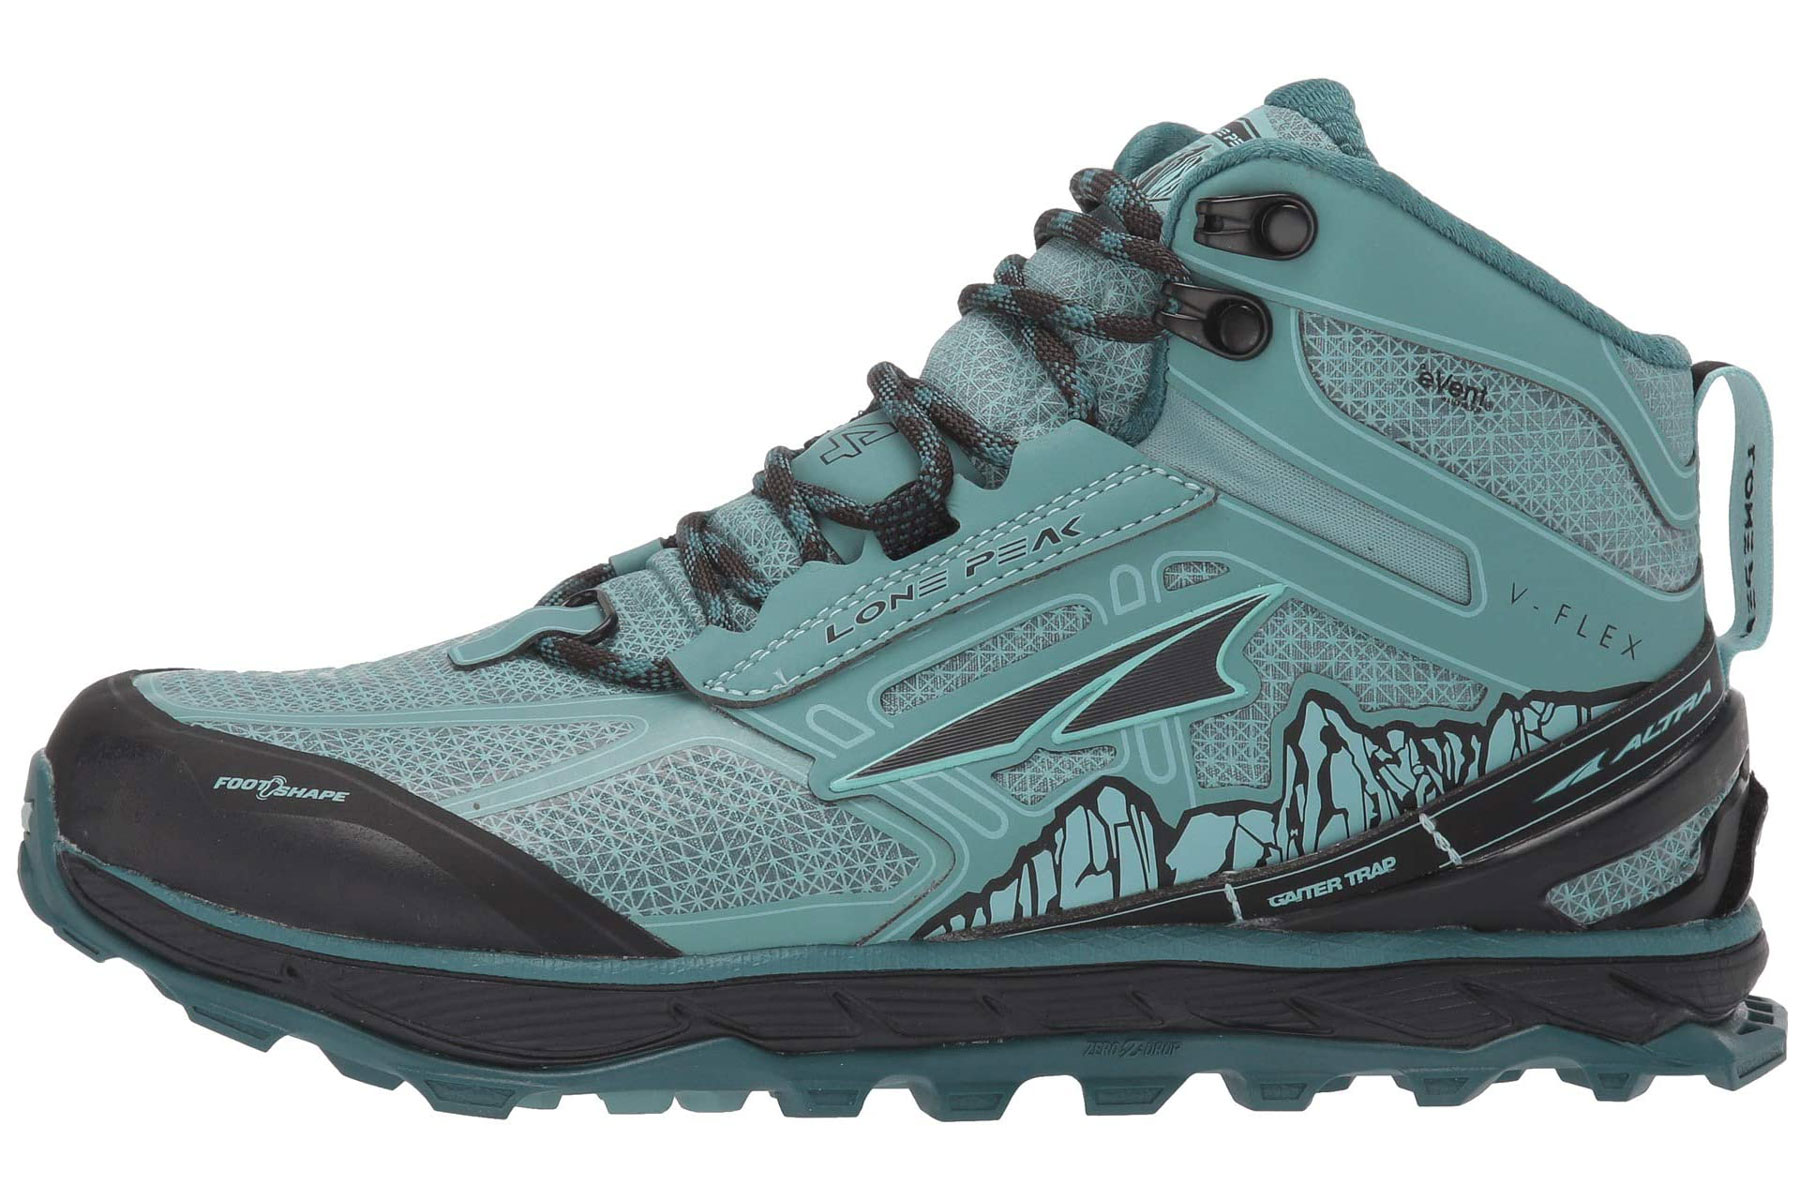 Blue and black hiking boots